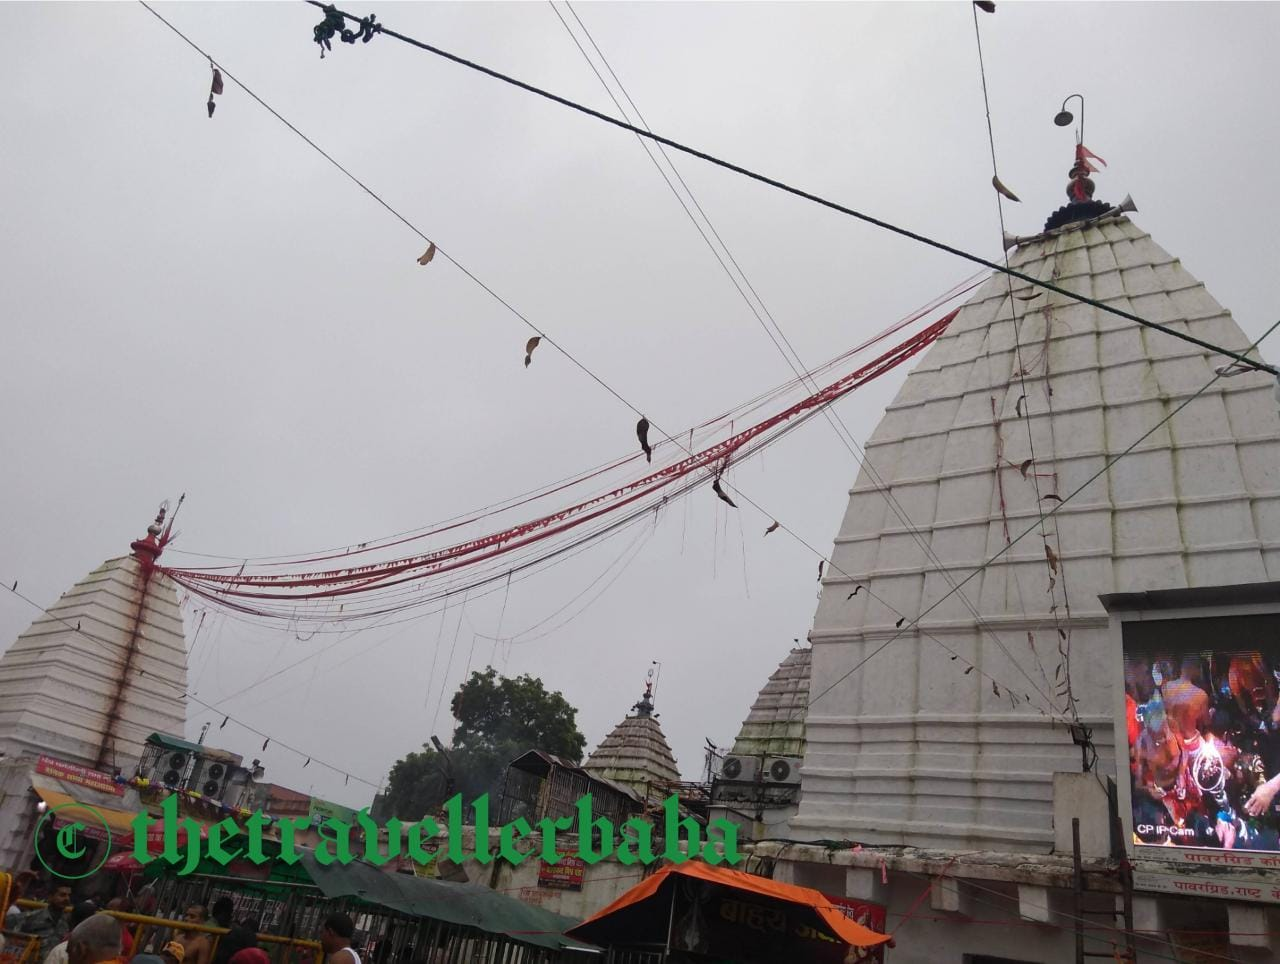 Shiva and the Shakti tied wit the knot in Baba Baidyanatha,Deoghar.